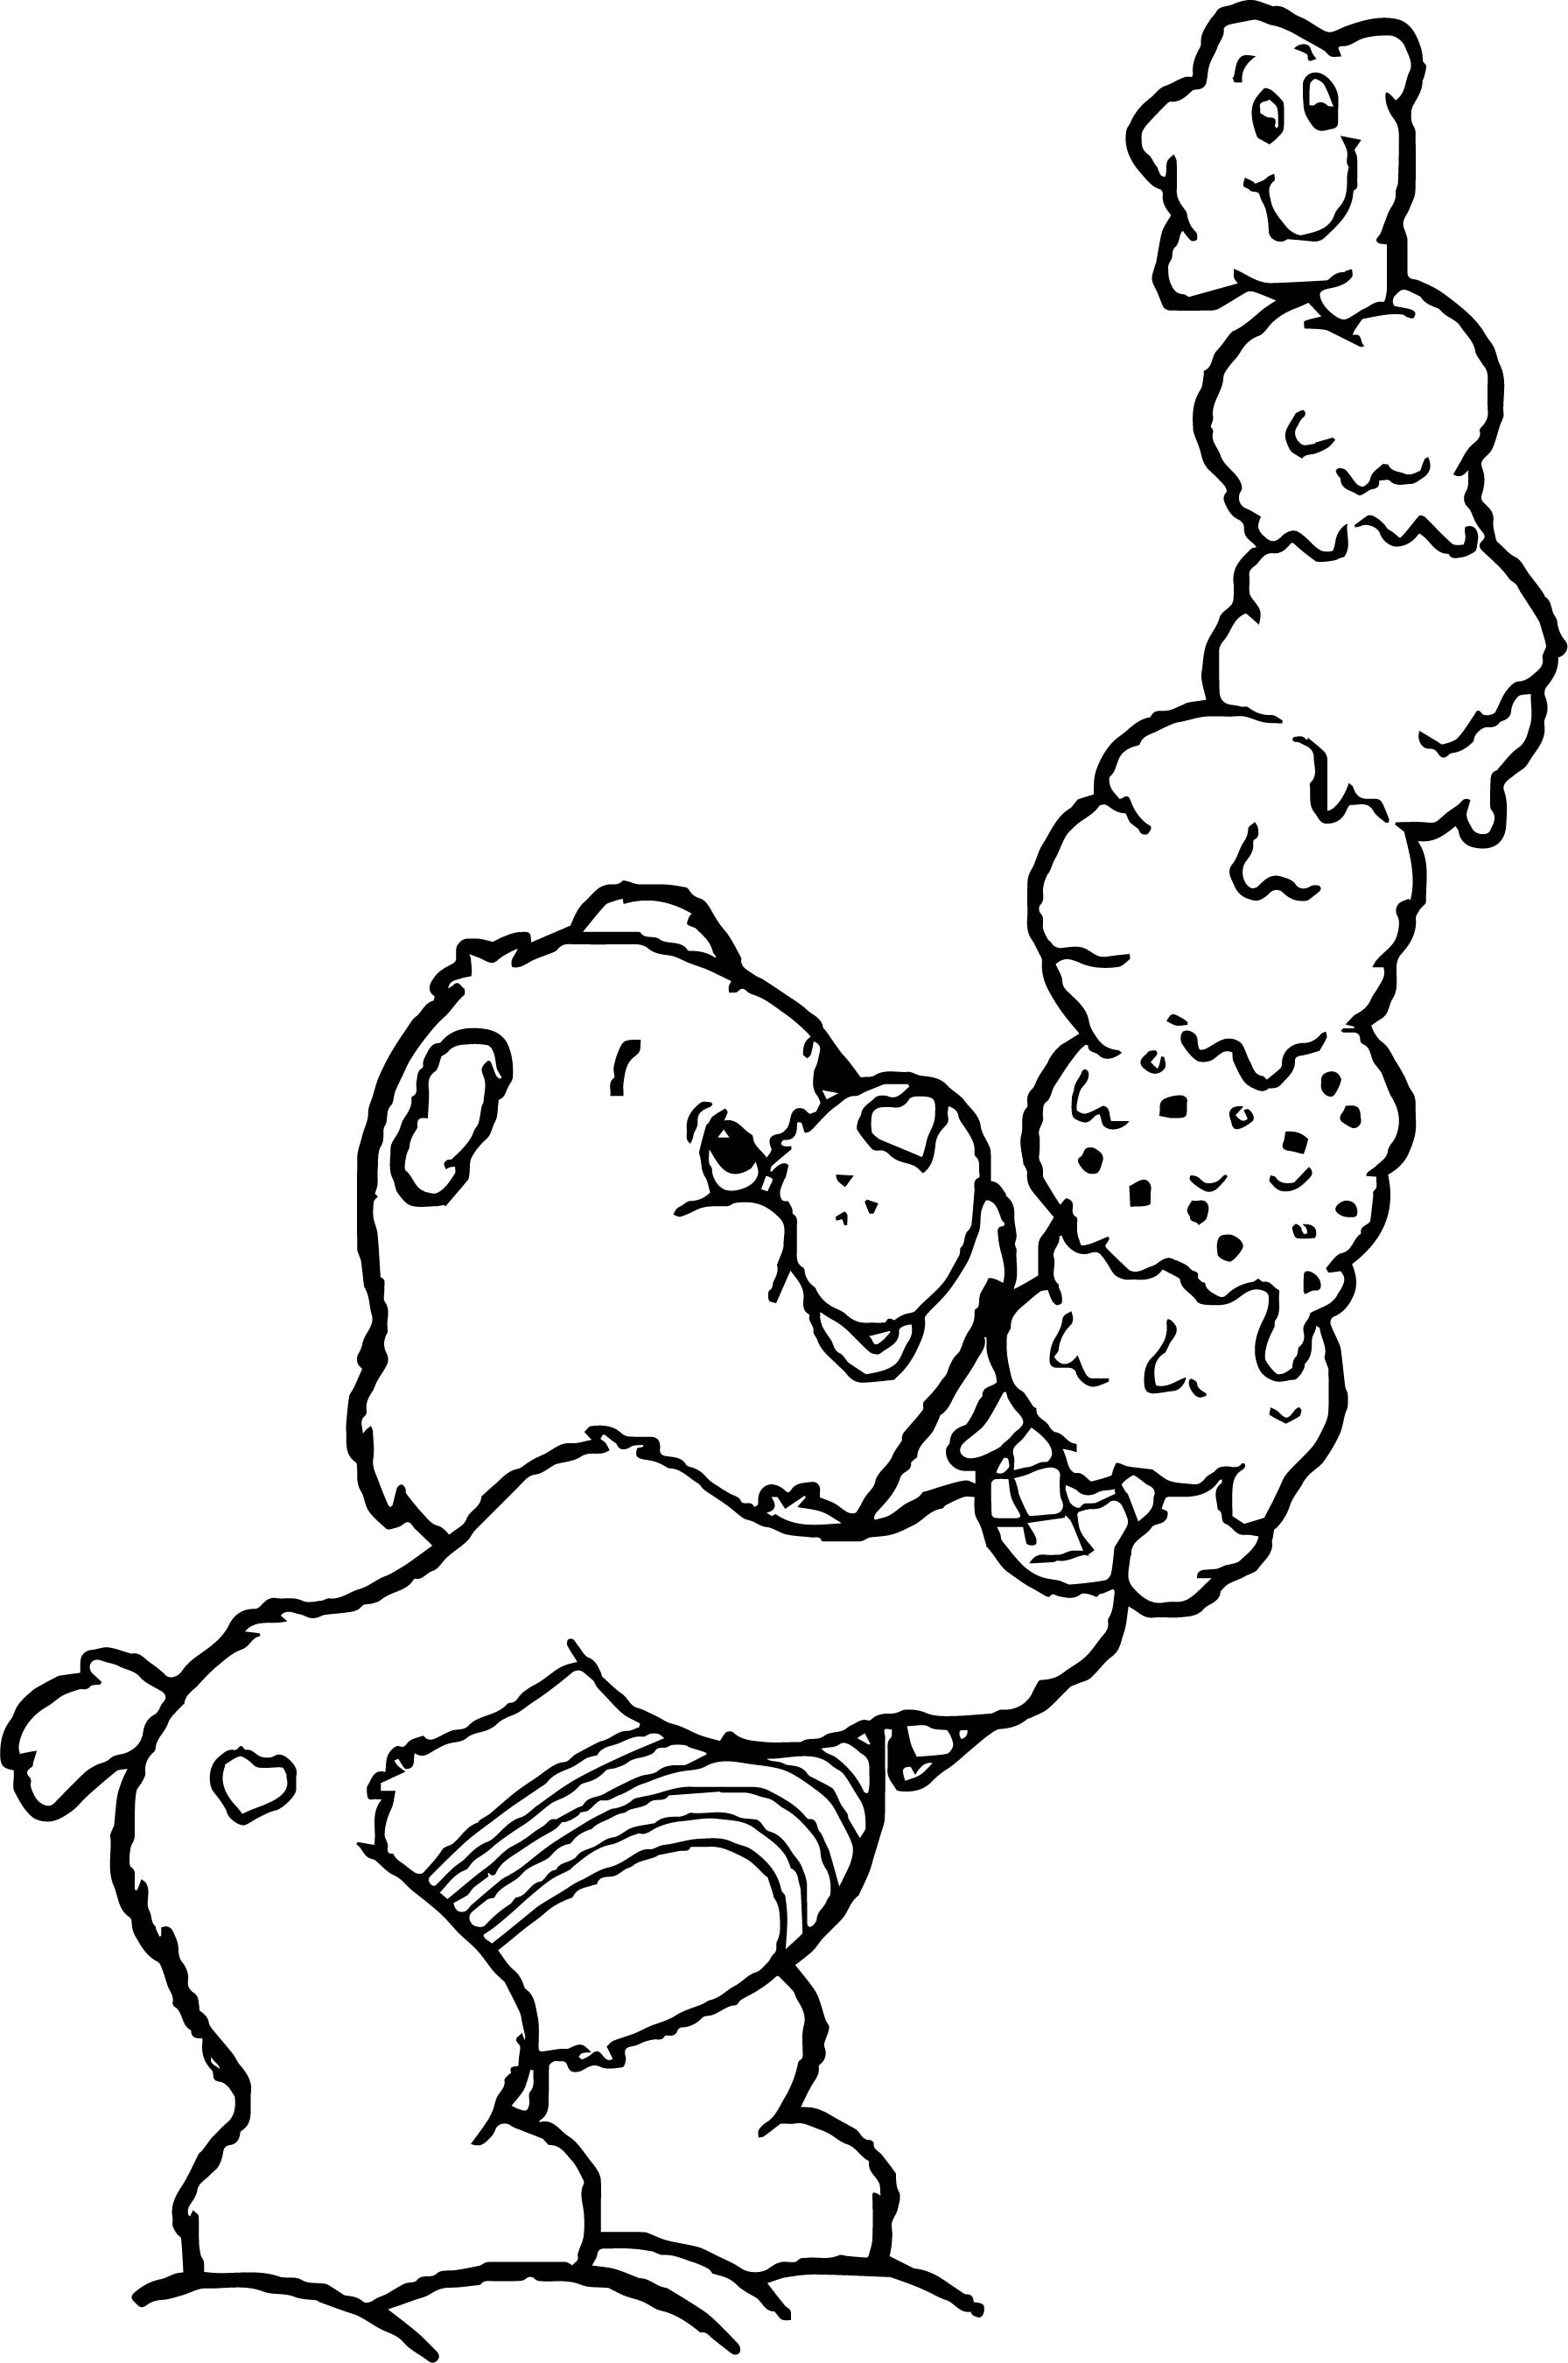 Care Bears Ice Cream Coloring Page | Wecoloringpage.com